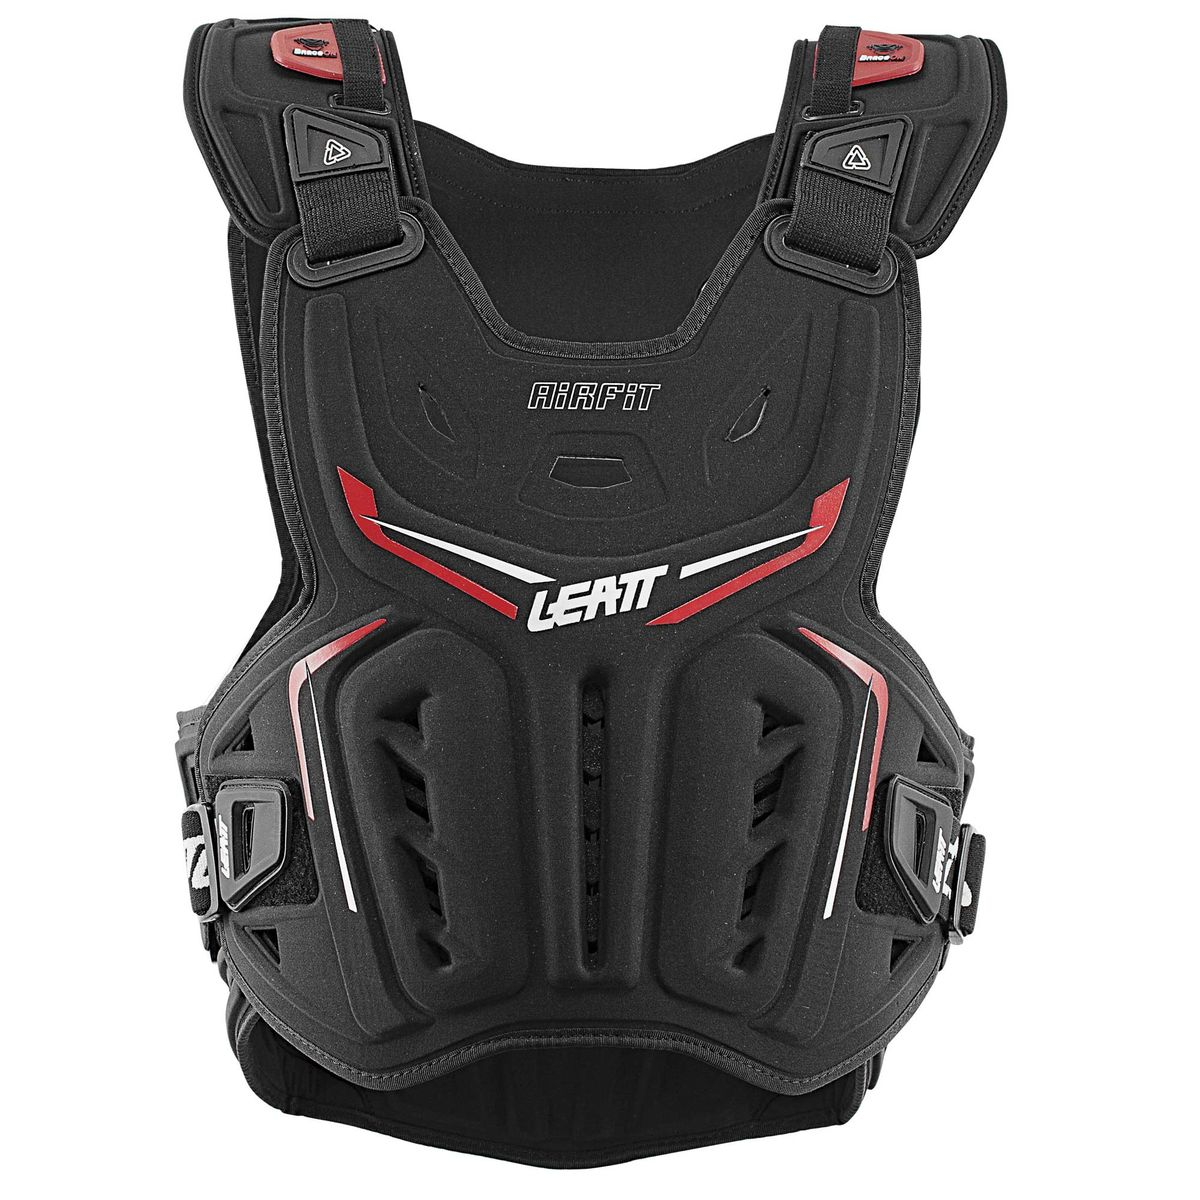 3DF AIRFIT CHEST PROTECTOR